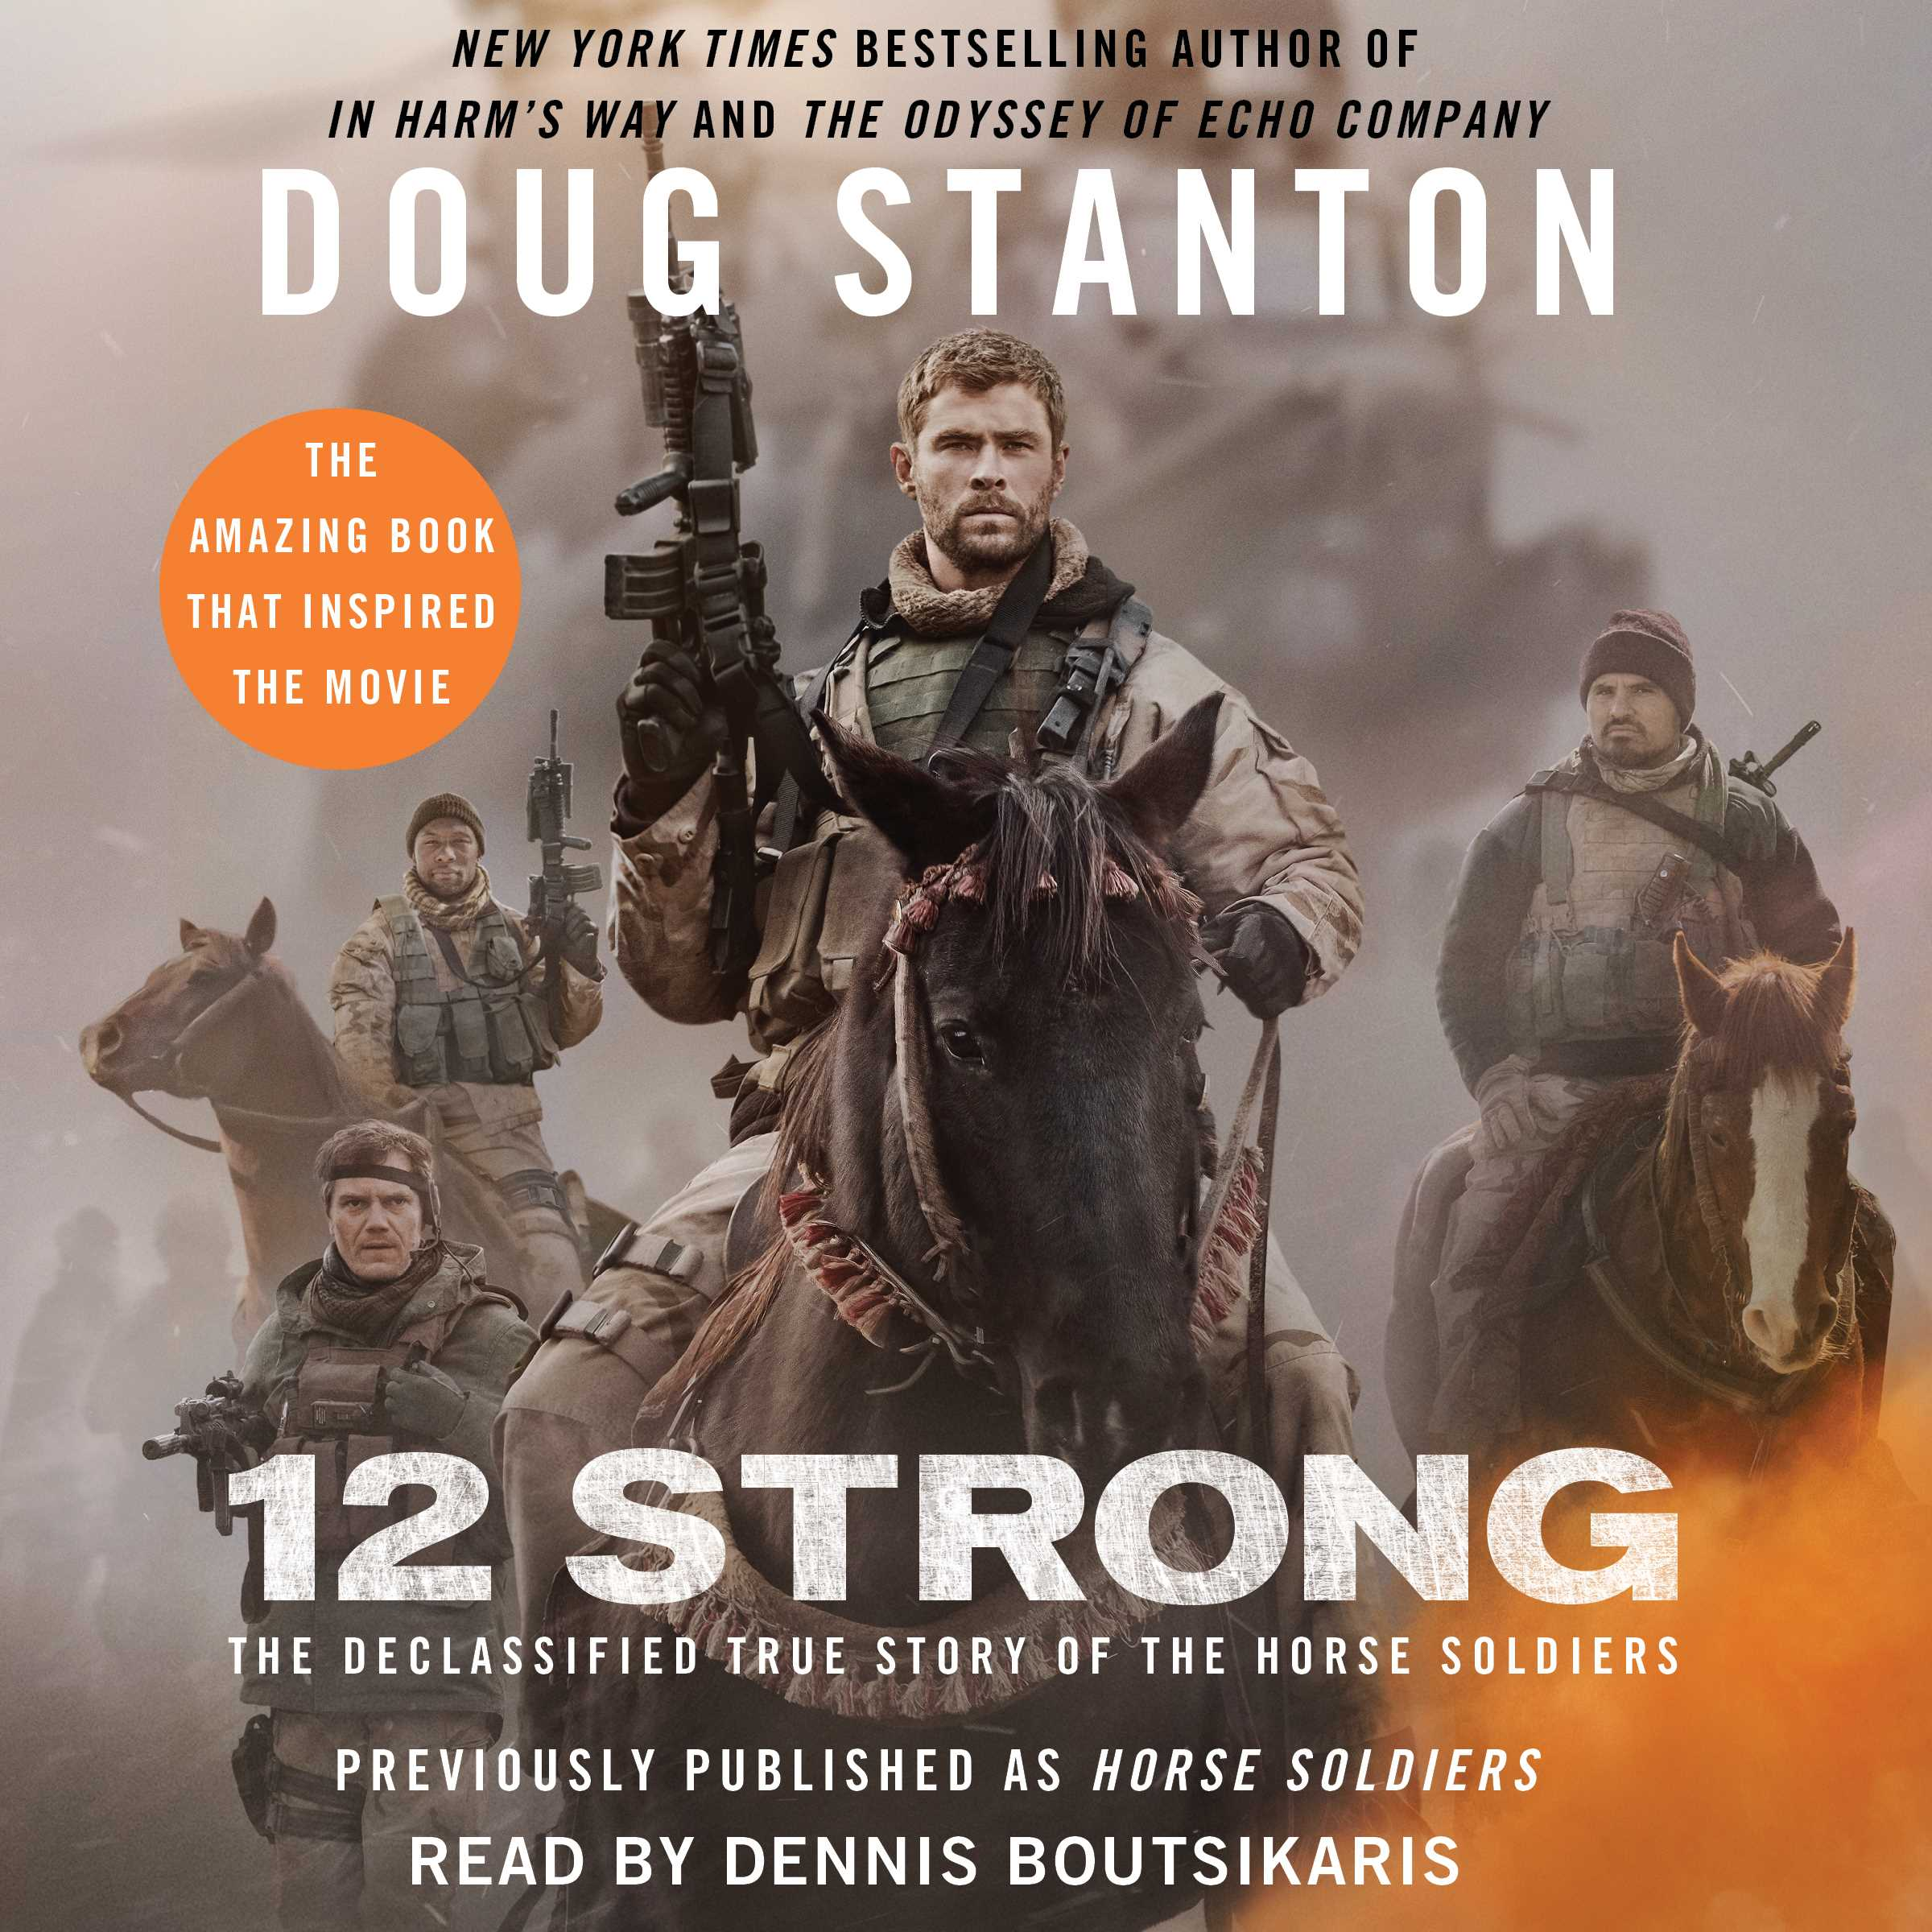 12 strong 9780743580823 hr